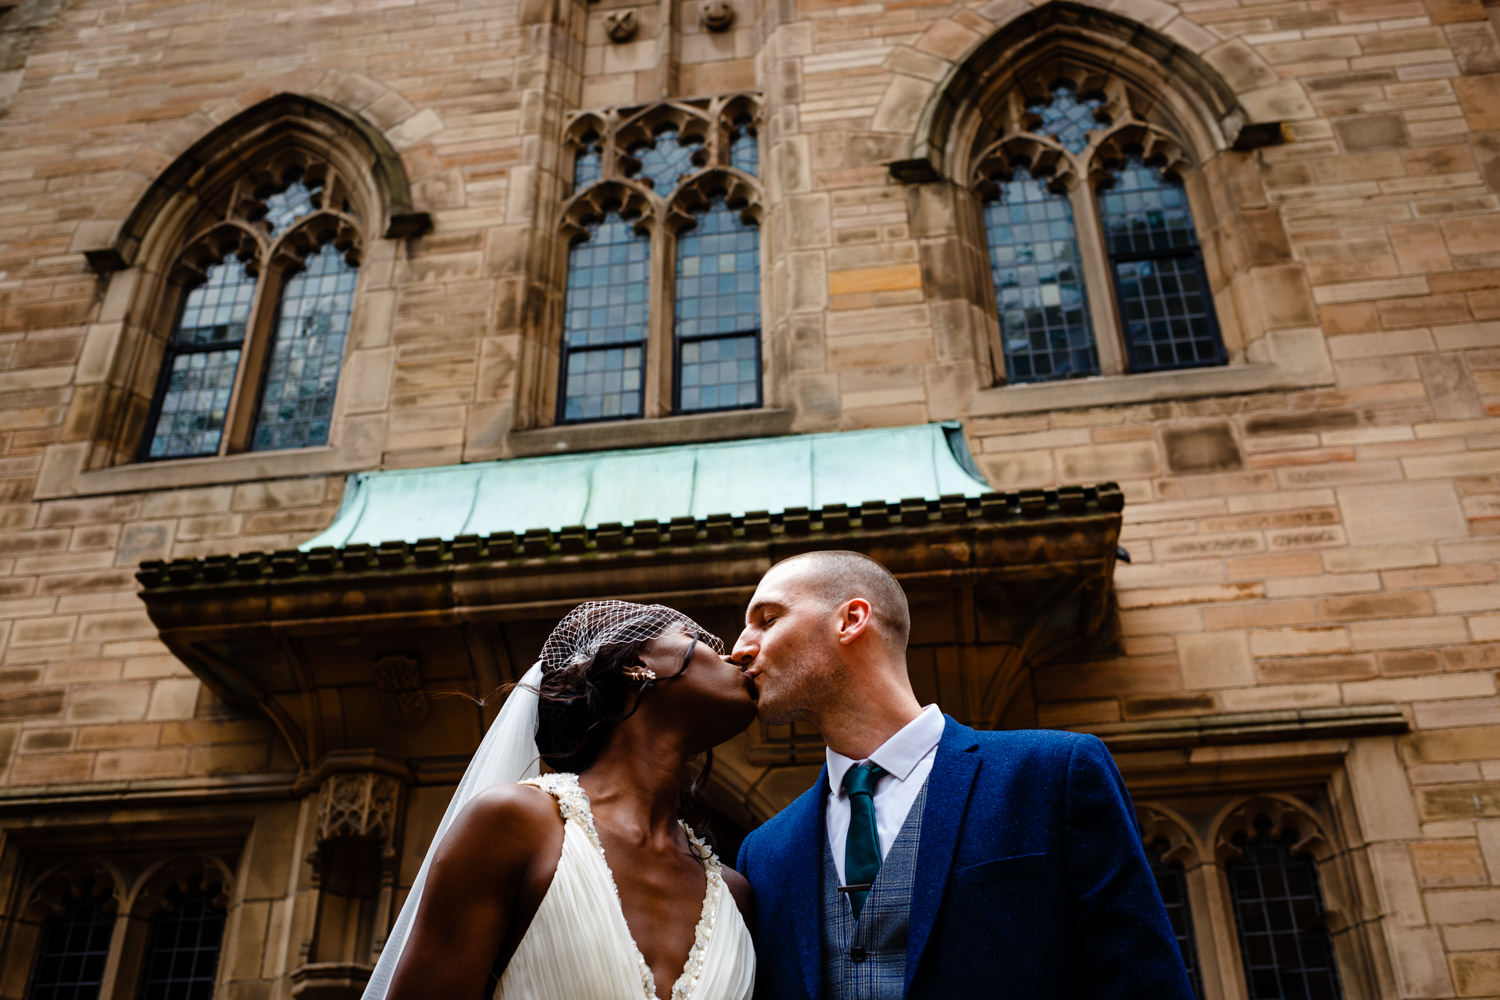 Flick and Will Liverpool Wedding Photographer-41.jpg